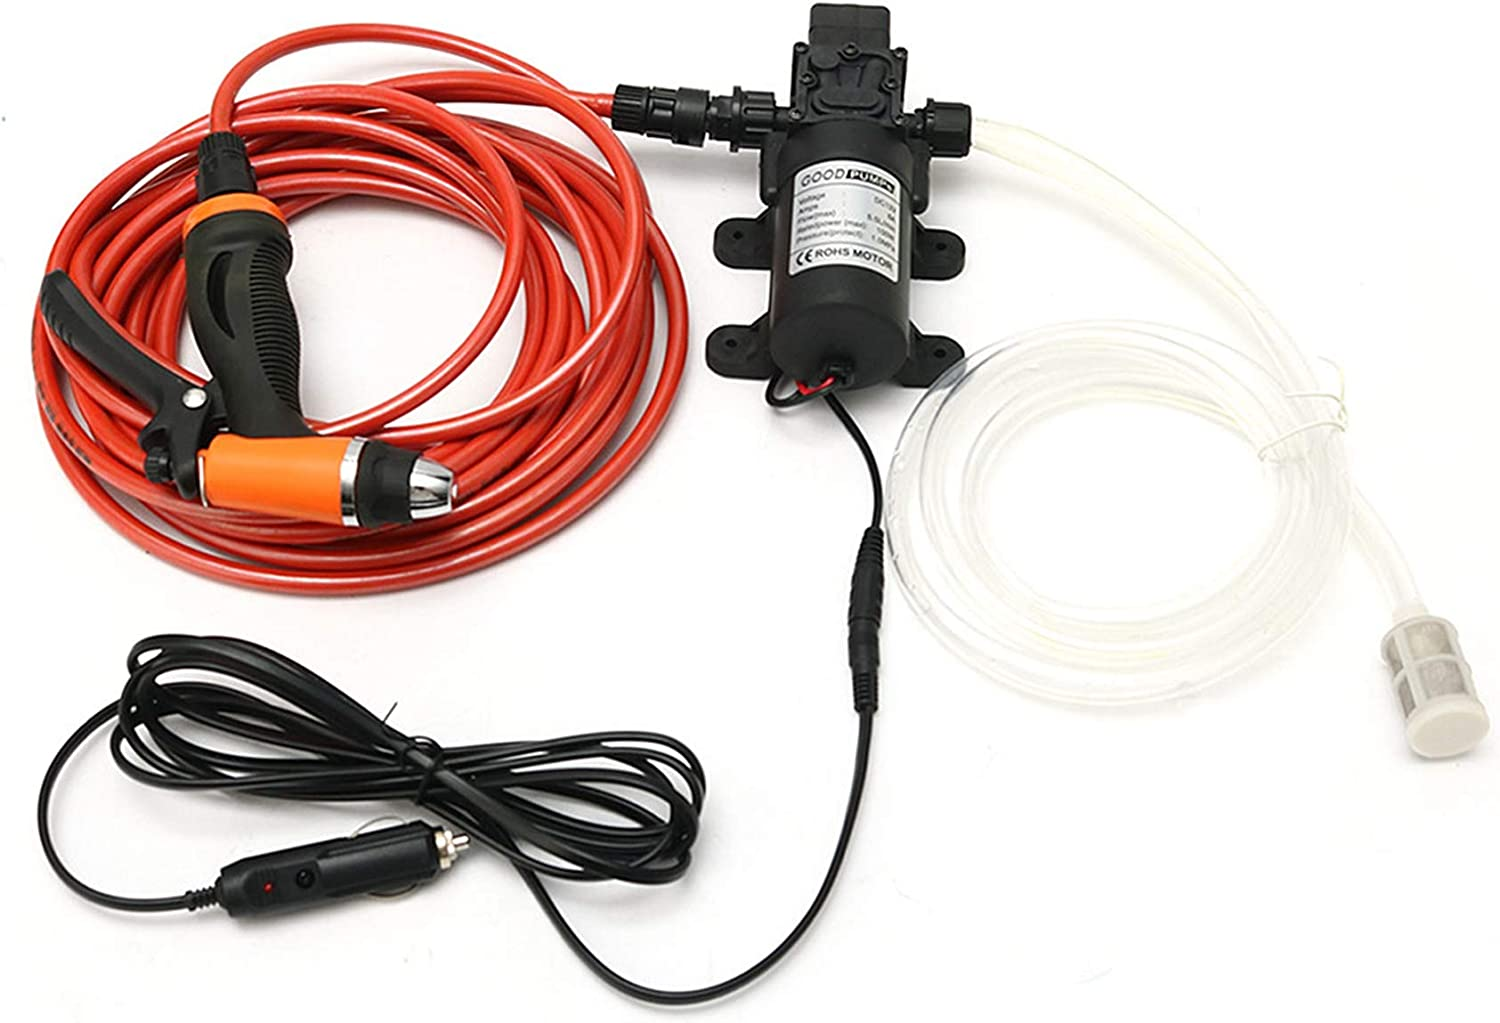 AMZFDC Car Wash Max 67% OFF Pump Cheap mail order specialty store 12V Qu Portable High Self-Priming Pressure